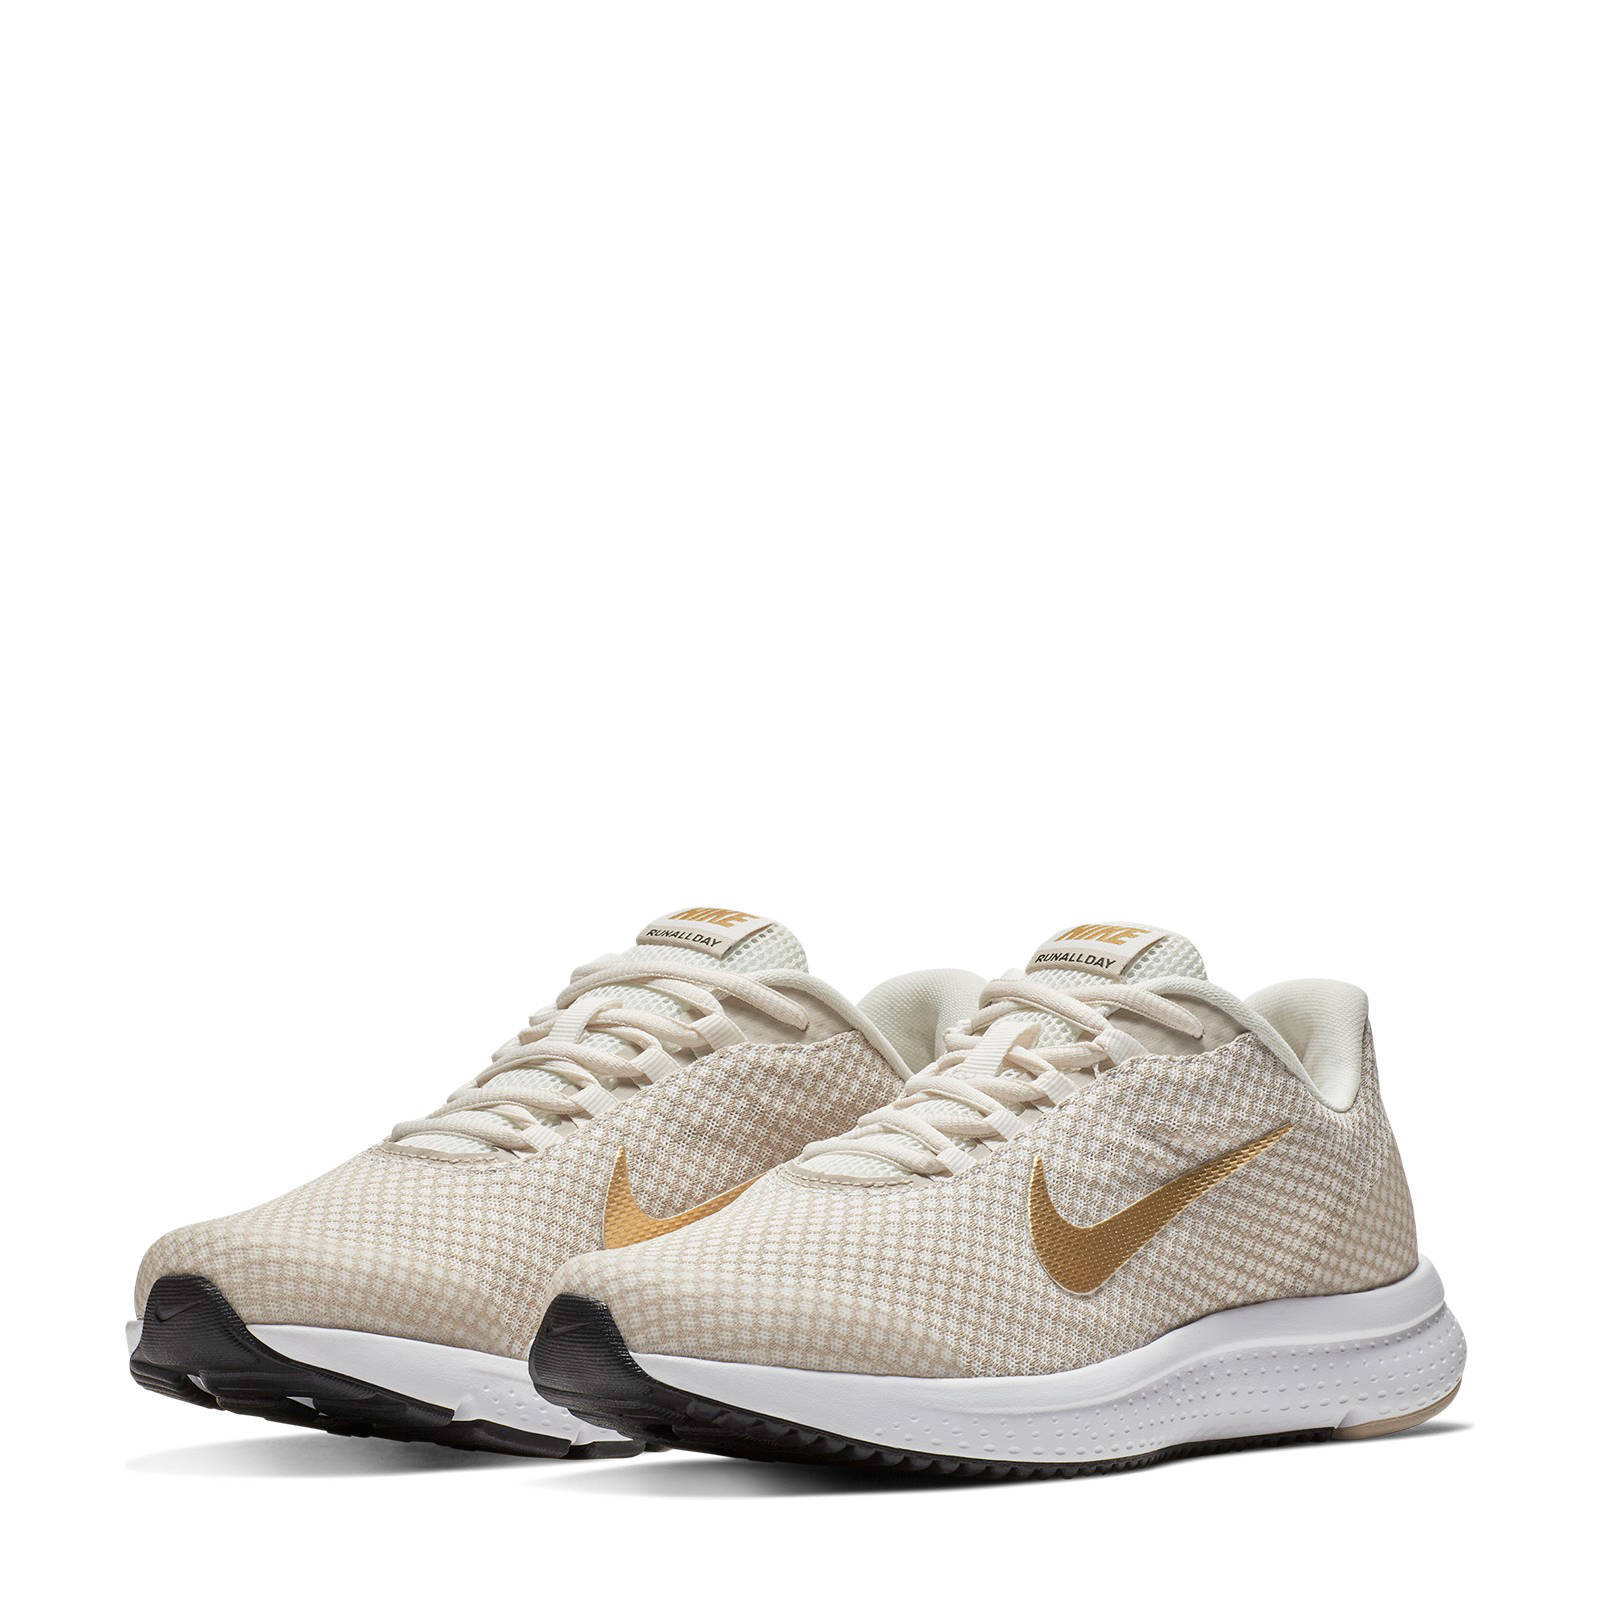 Runallday sneakers beige/goud